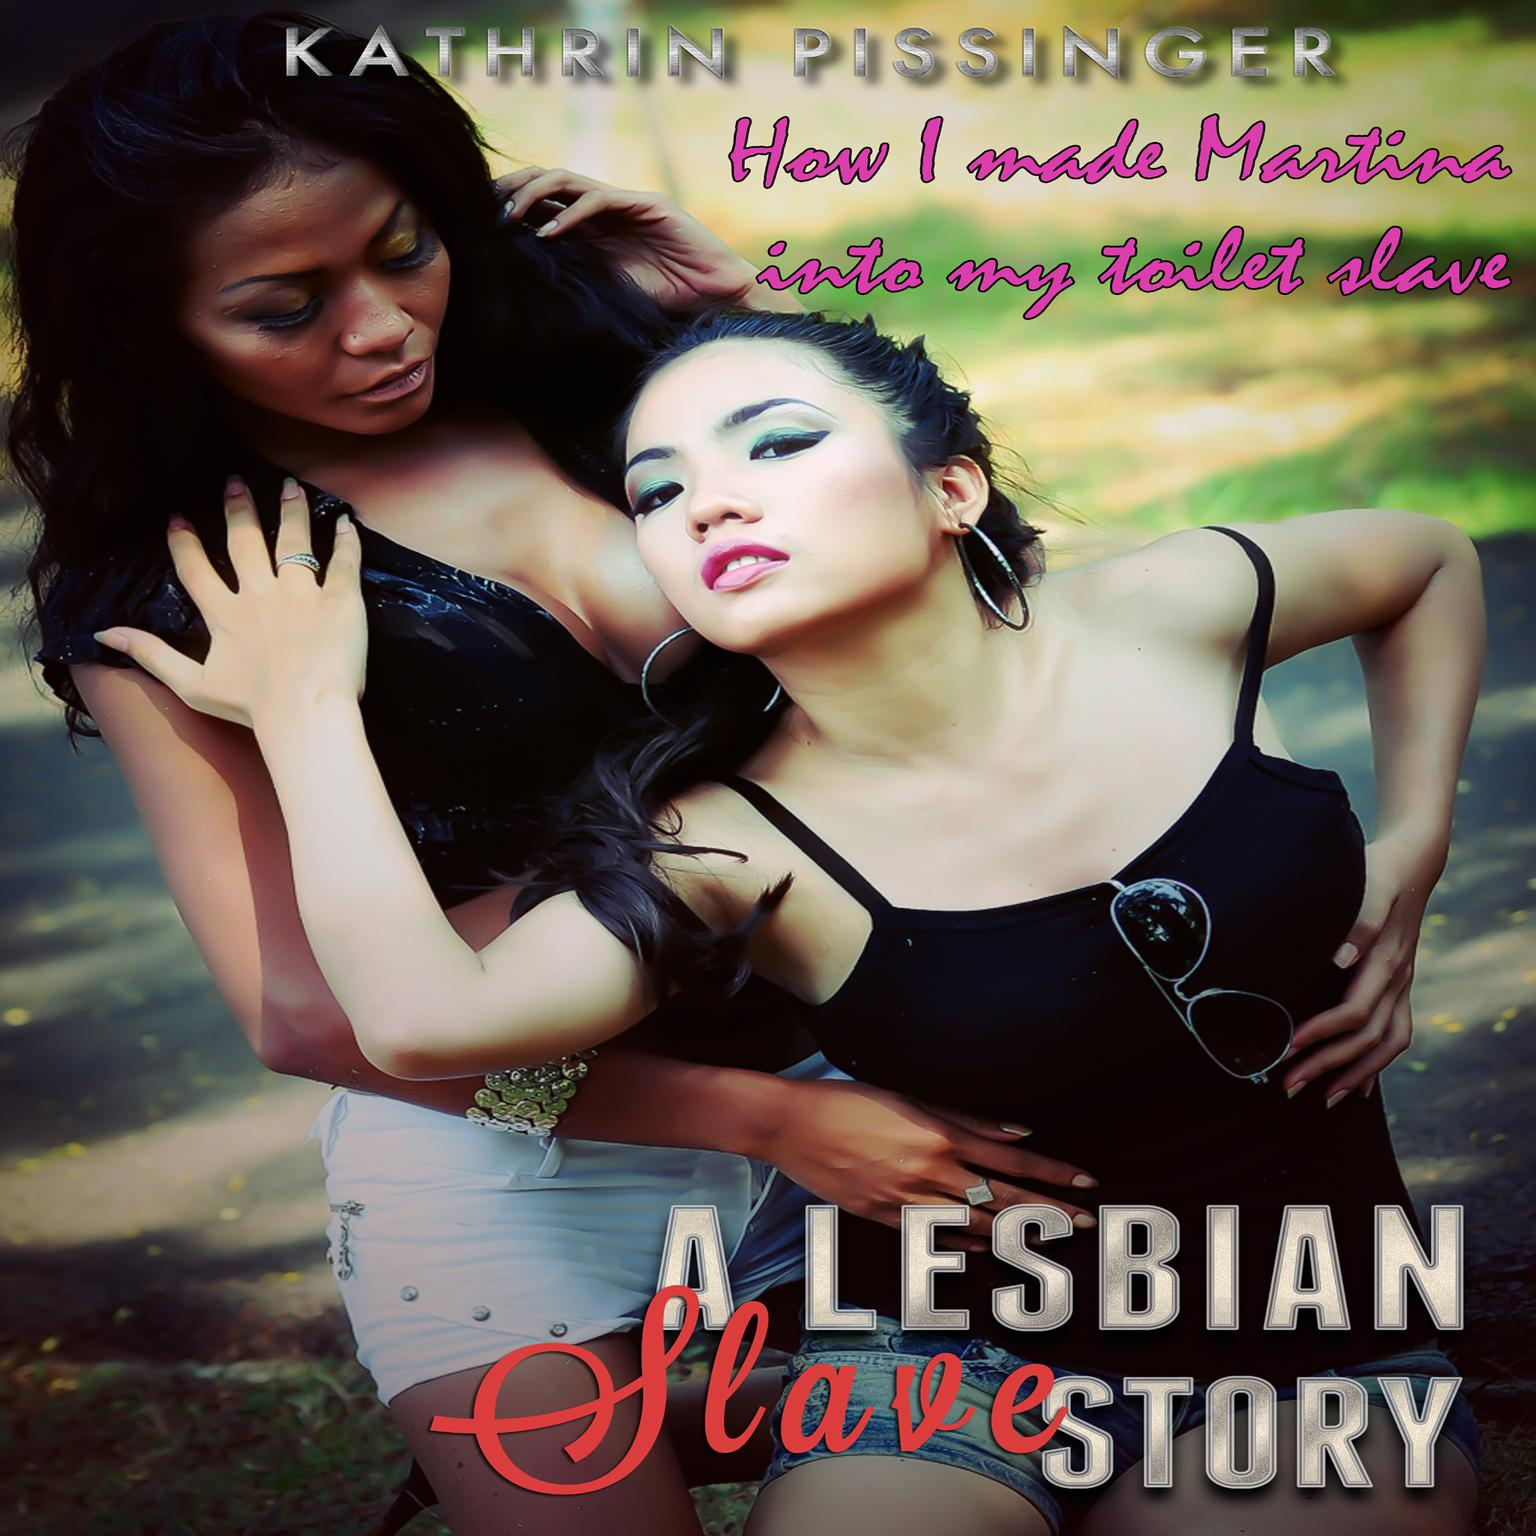 How I made Martina into my toilet slave Audiobook, by Kathrin Pissinger